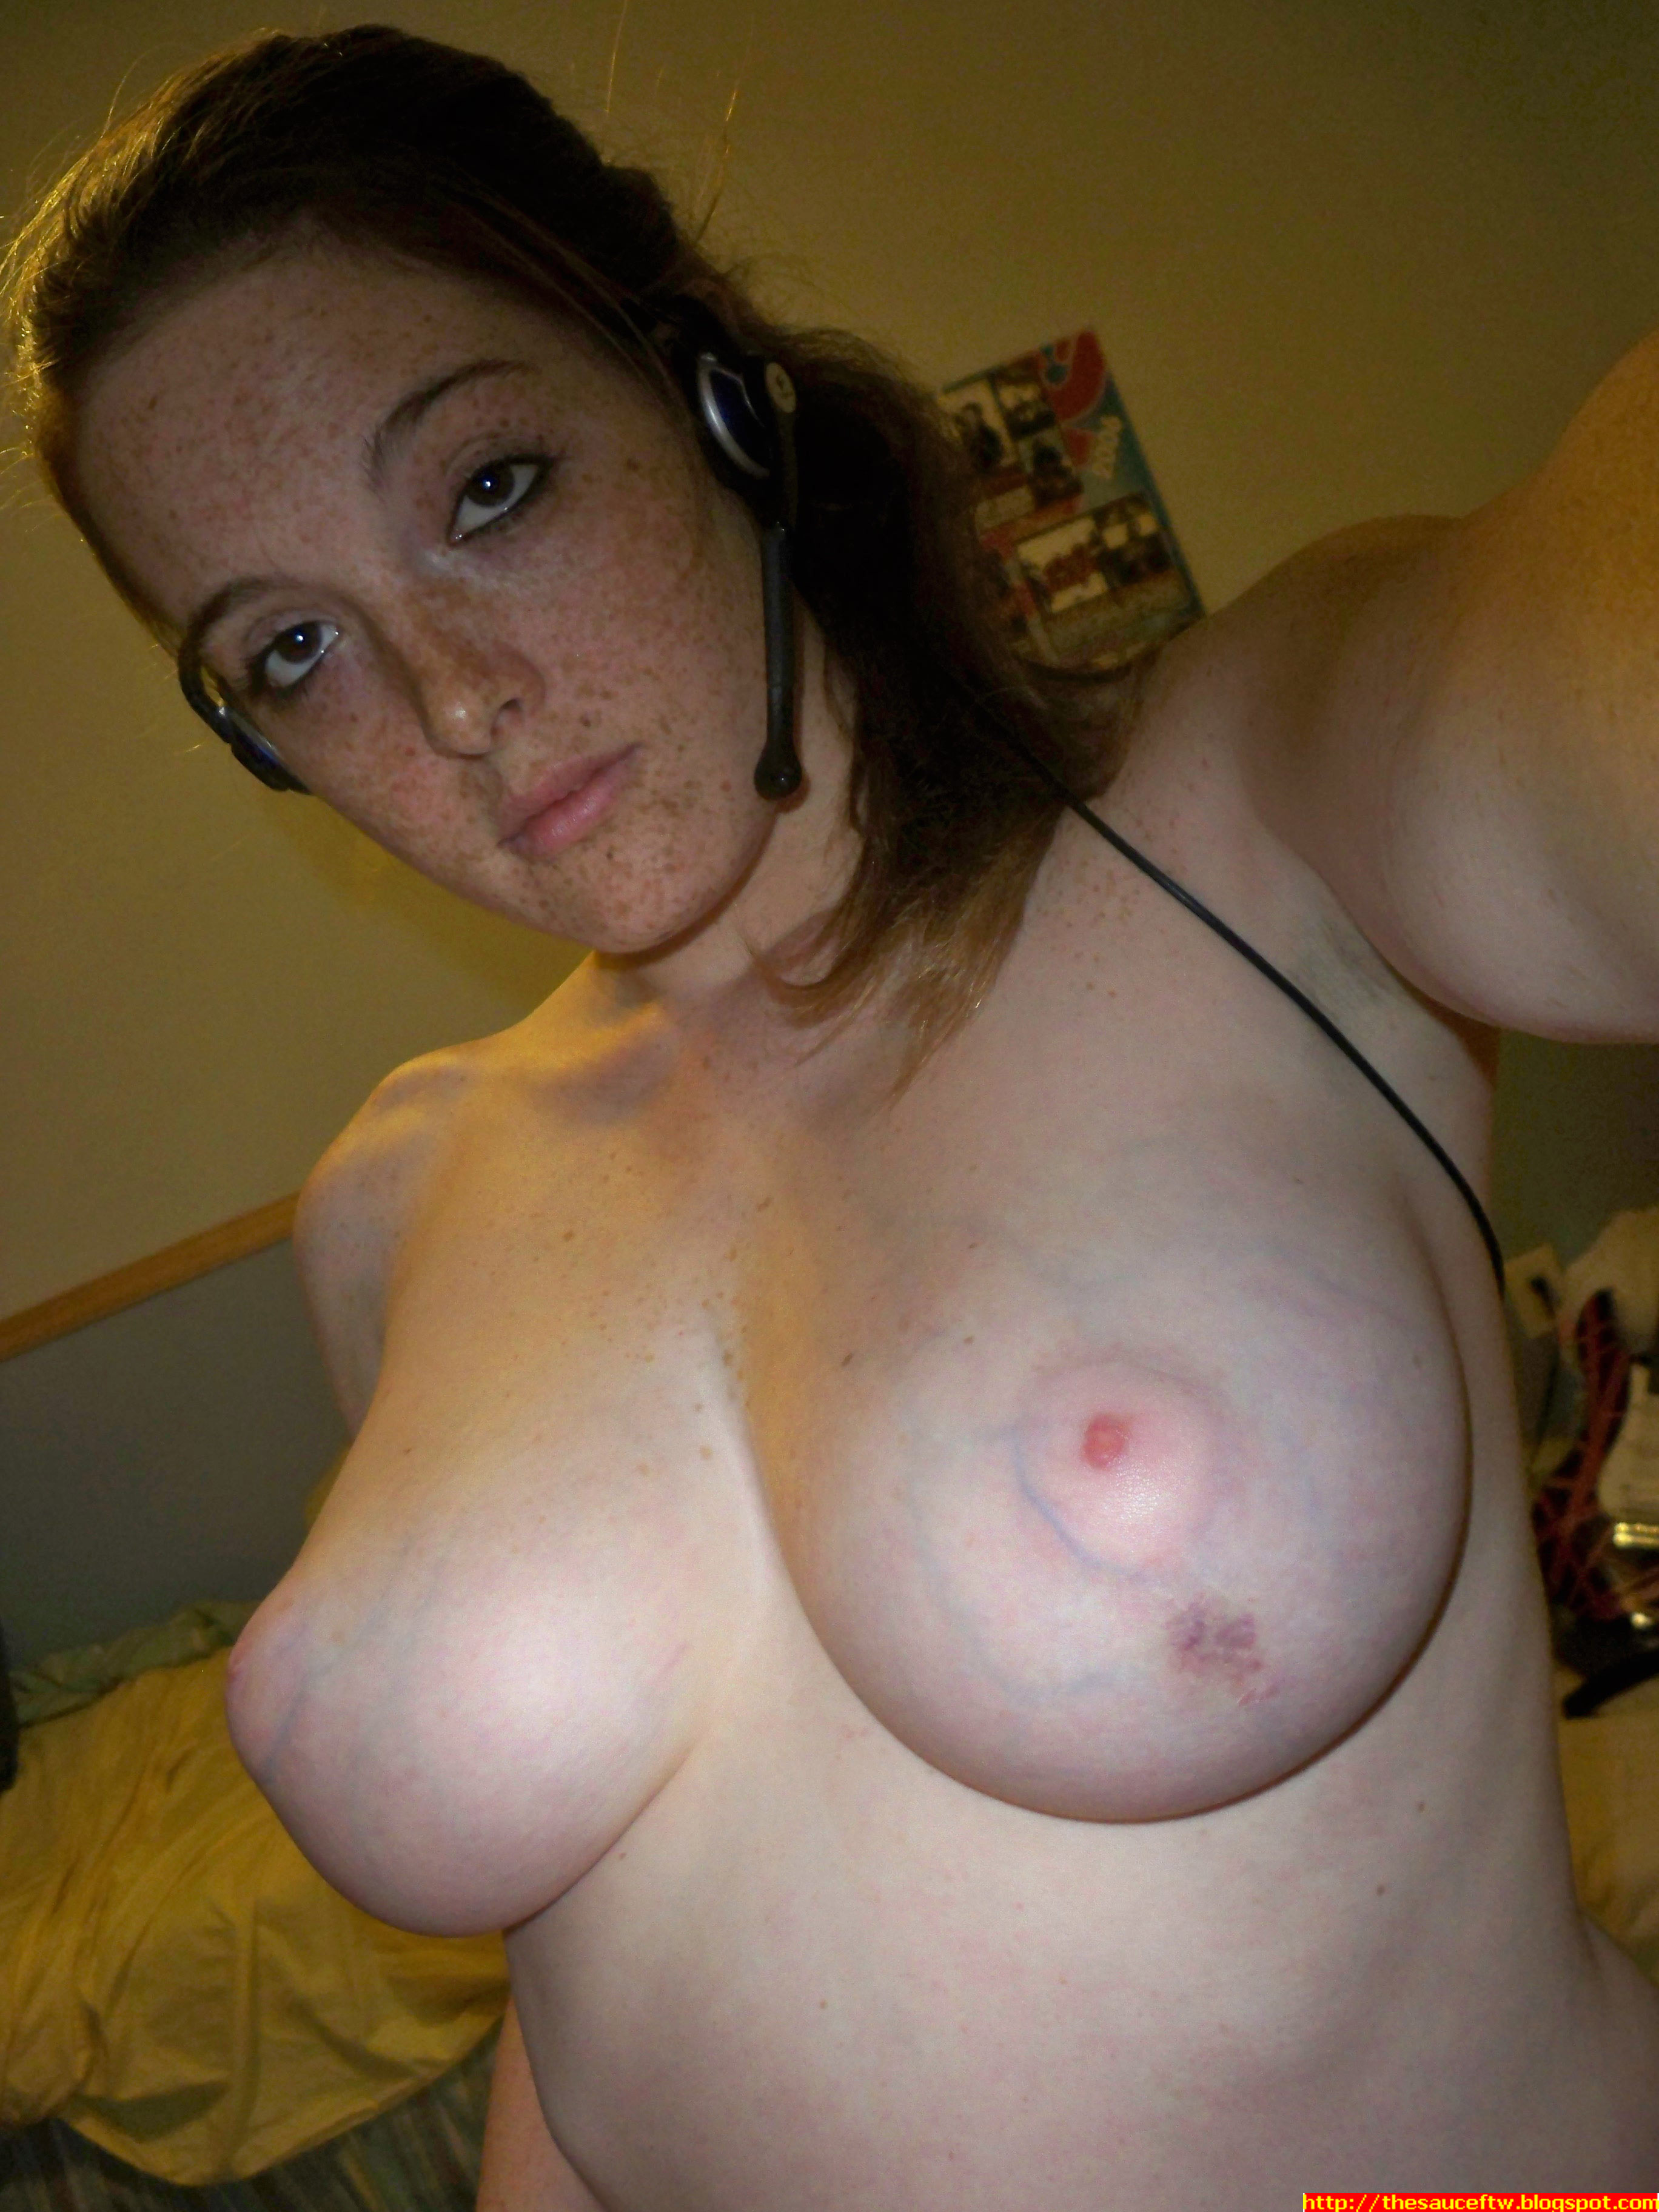 Me, Freckle nude pics apologise, but